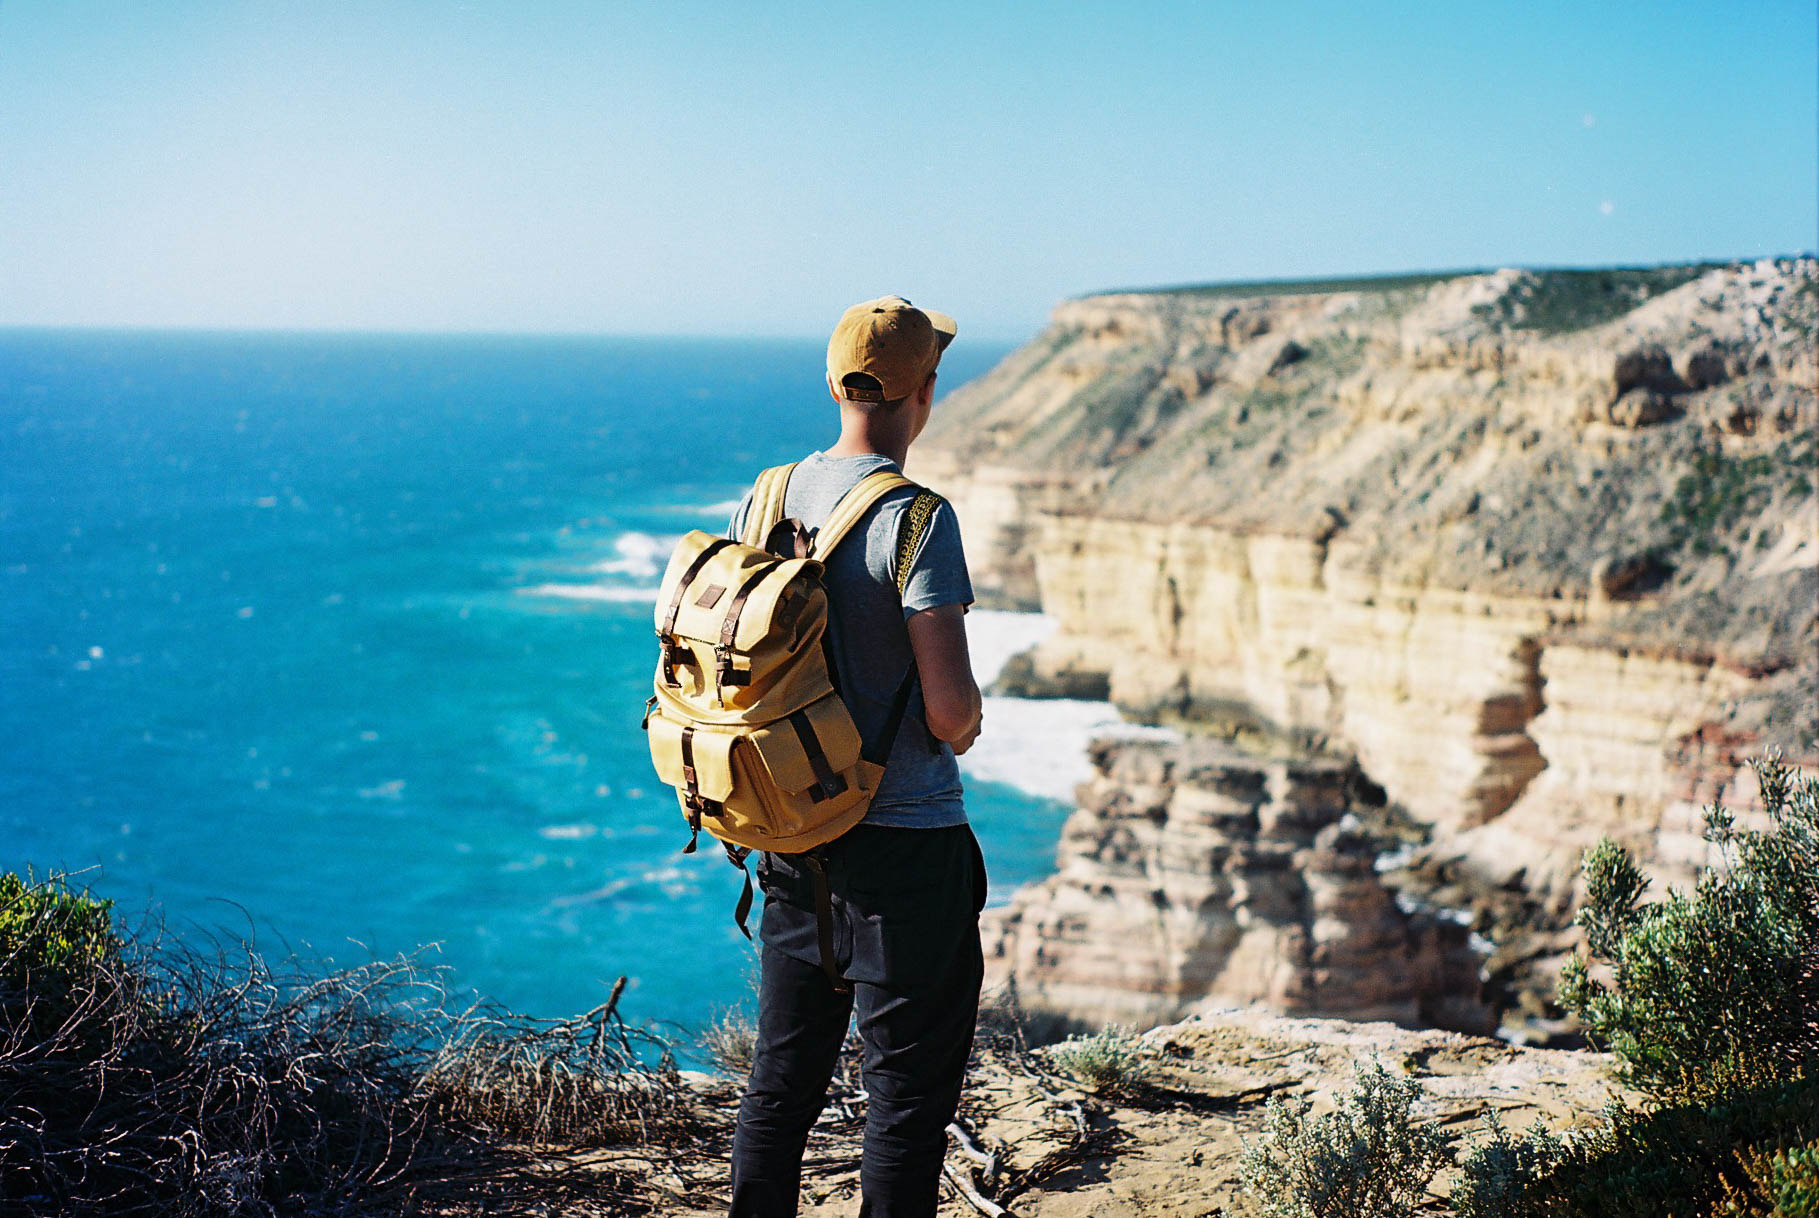 Kalbarri Coastal Cliffs Langly Analogue Travel Photographer